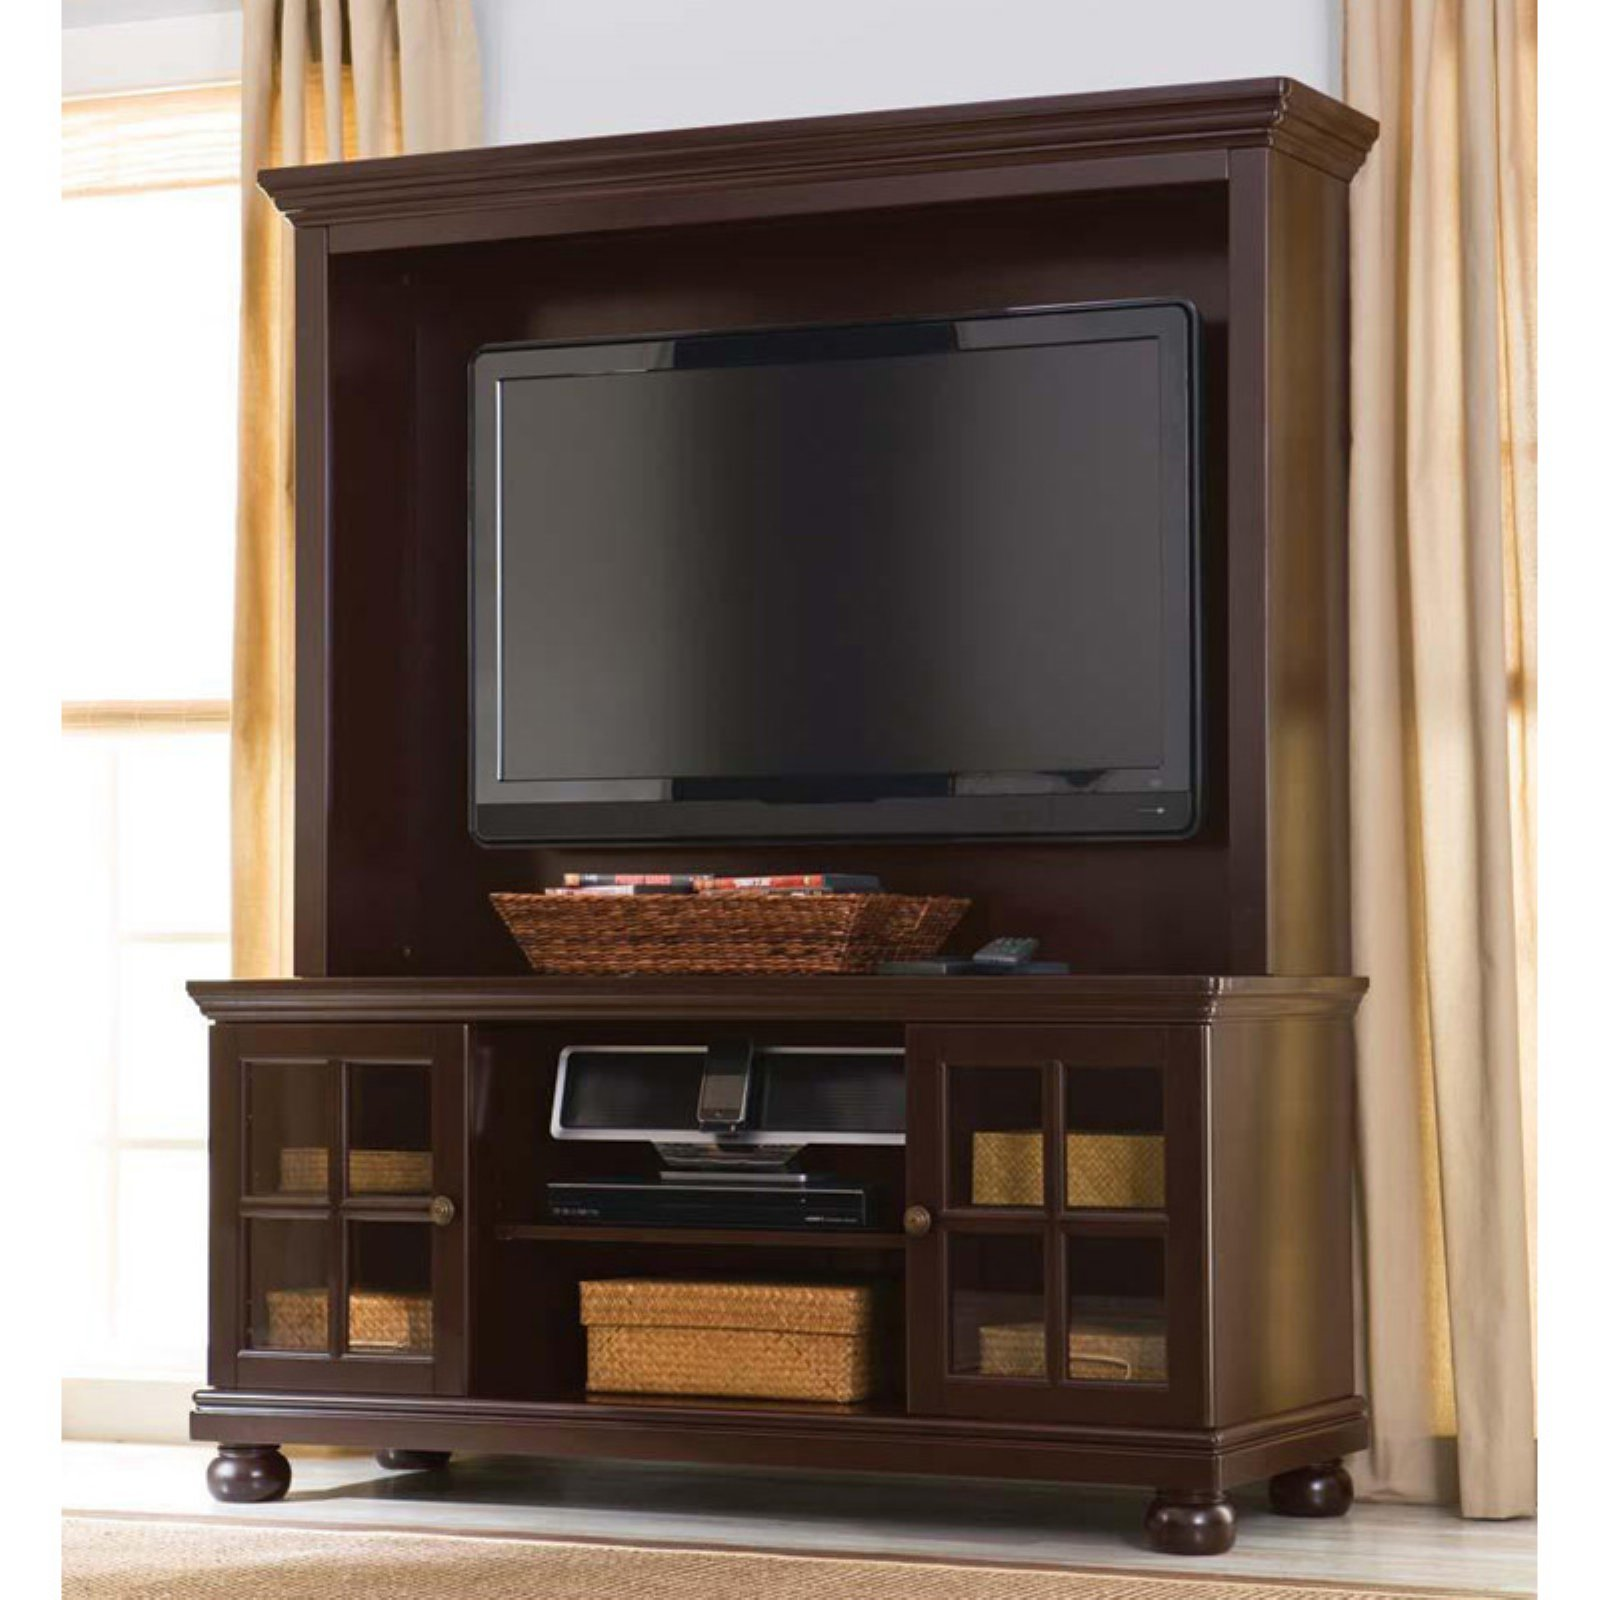 "Better Home and Gardens 50"" Flat Screen TV Stand with Hutch, Espresso"